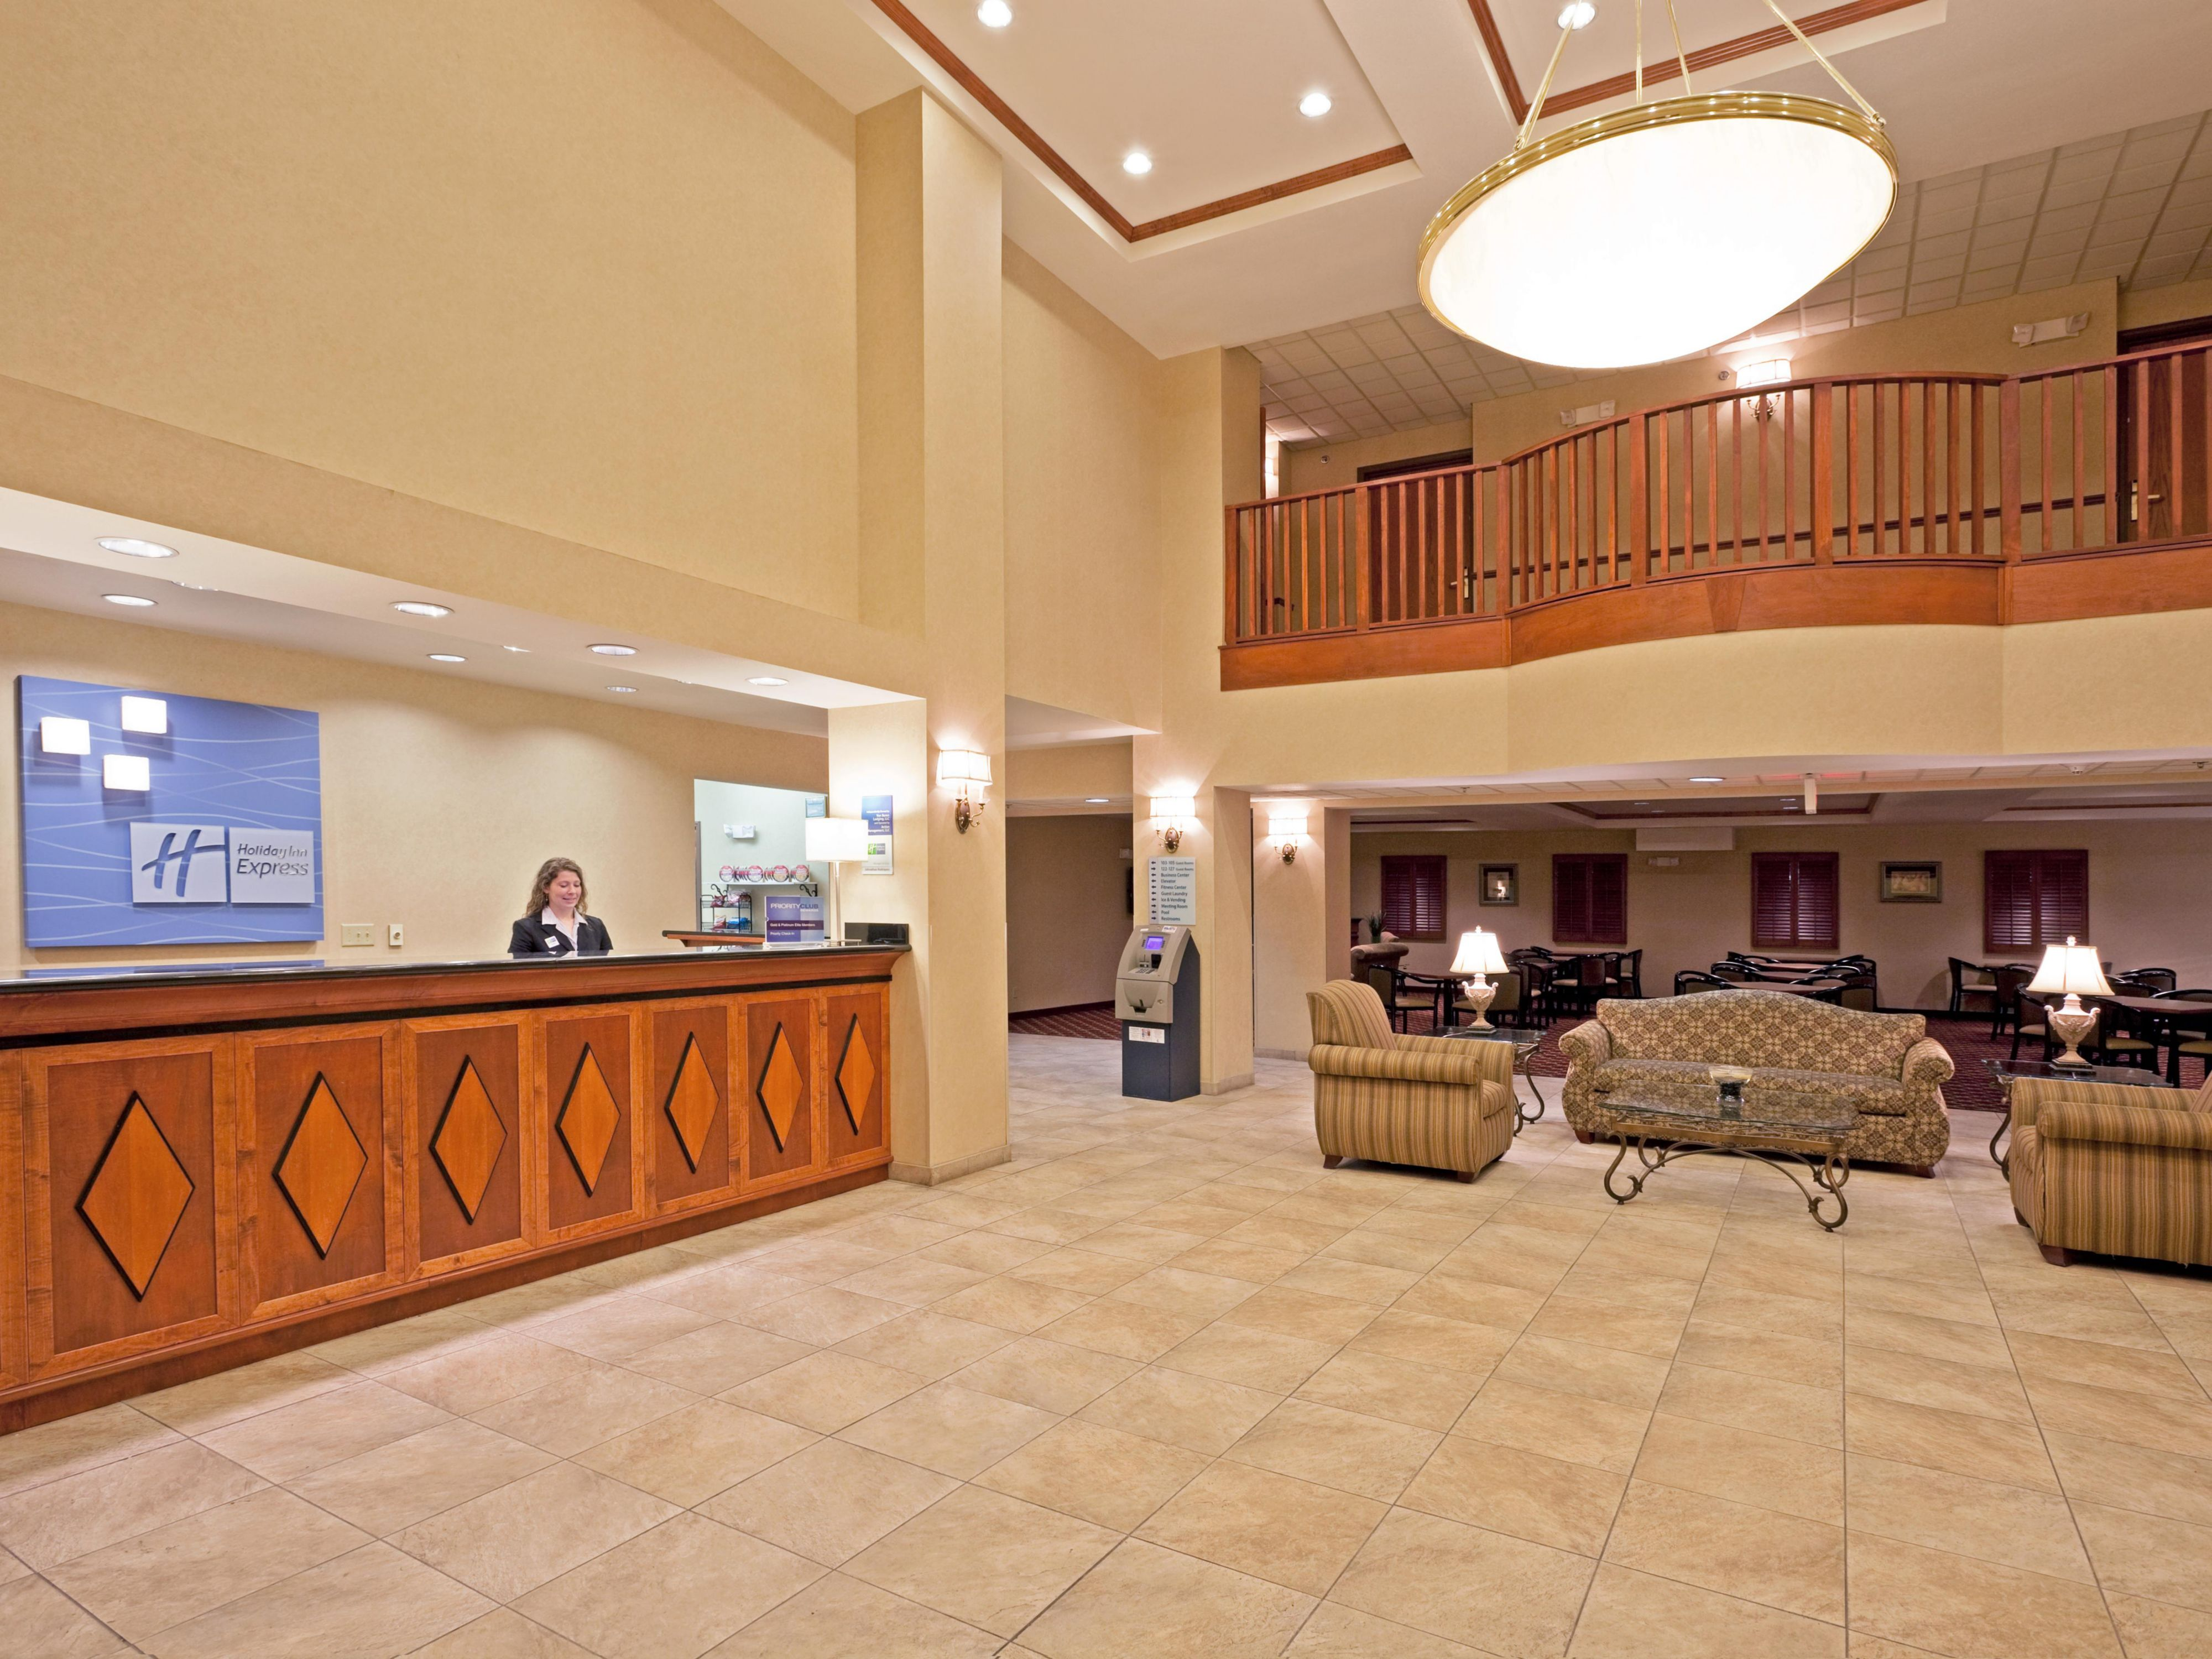 Our two story lobby provides the perfect gathering place